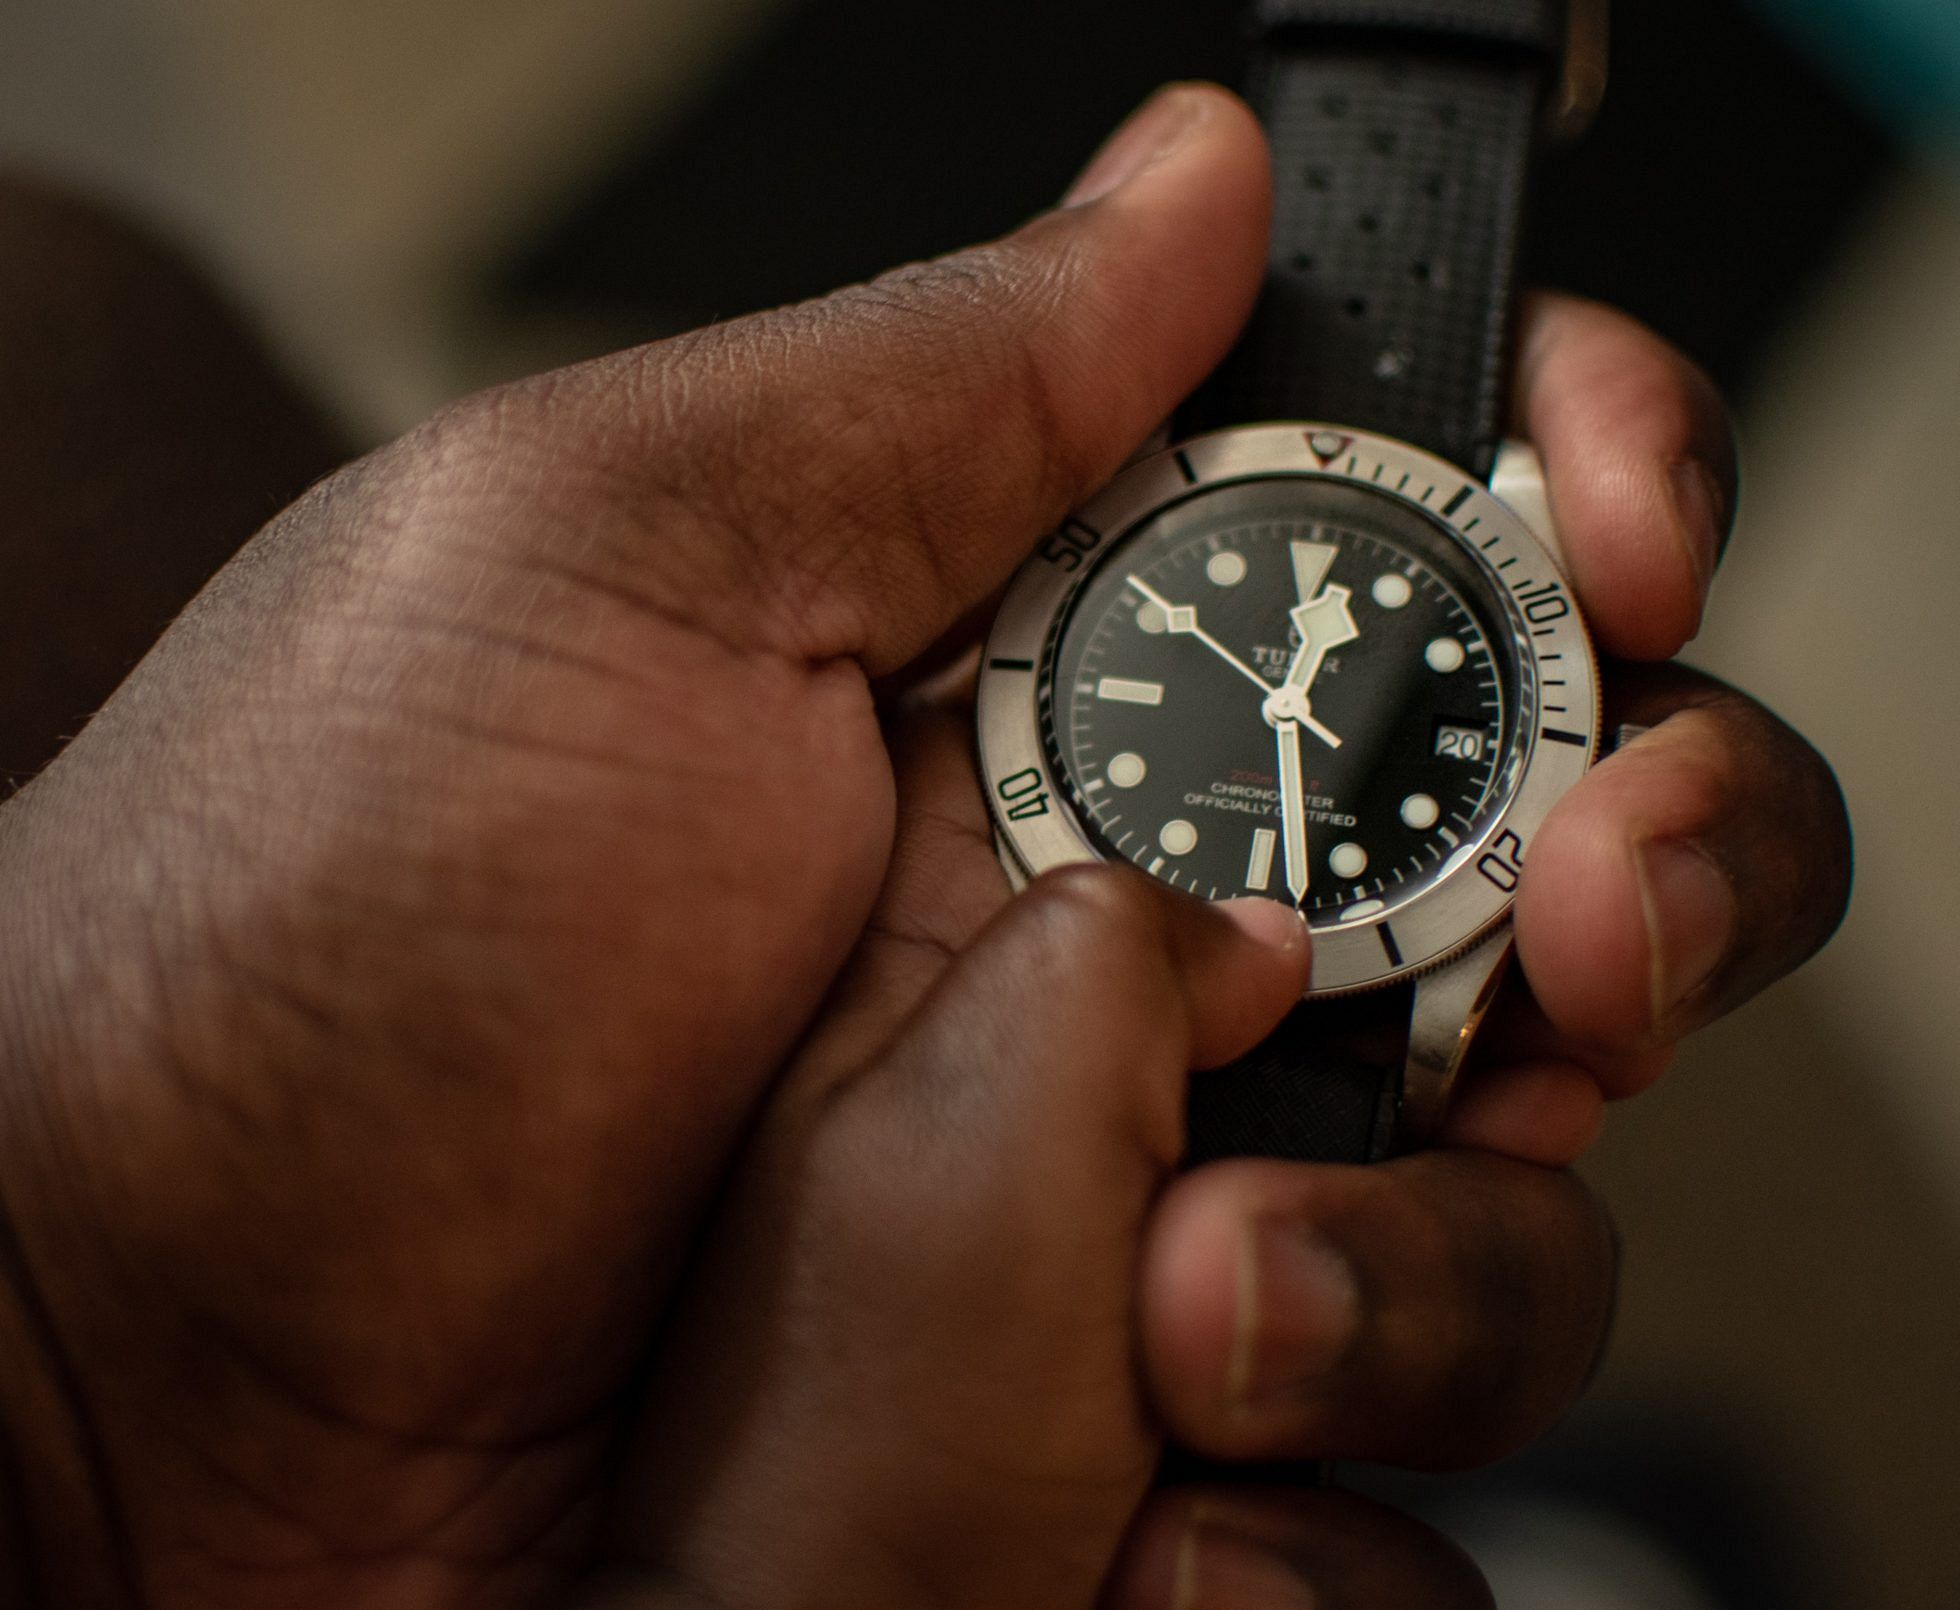 the watch I would pass down to my son